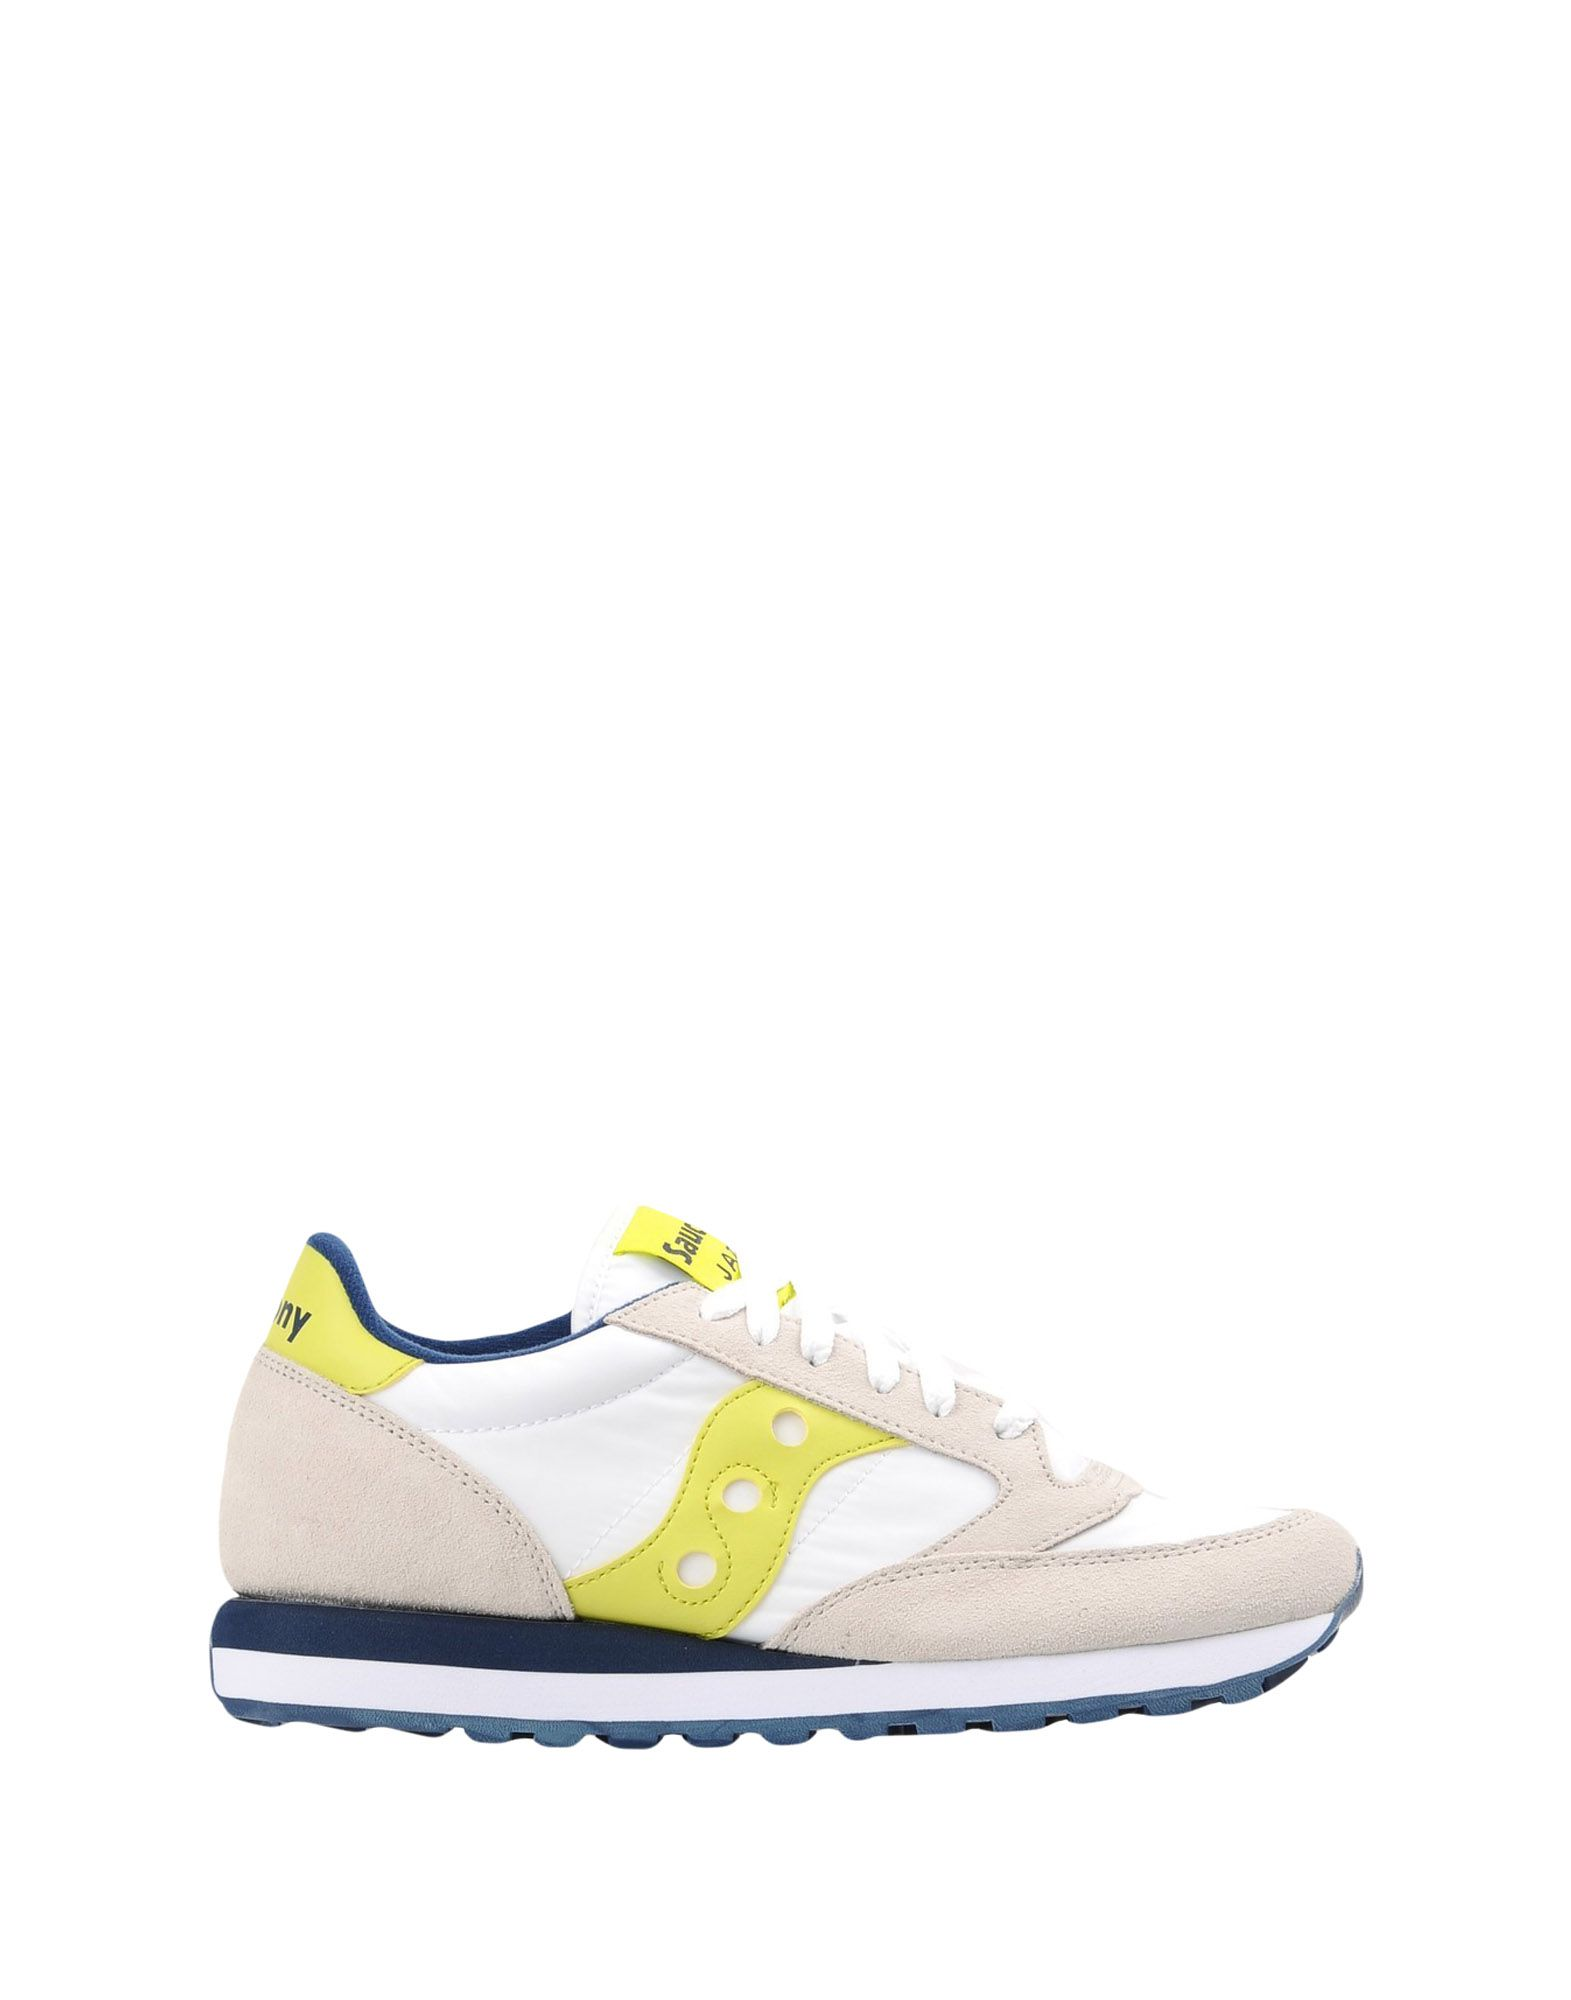 Sneakers Saucony Jazz O W - Femme - Sneakers Saucony sur